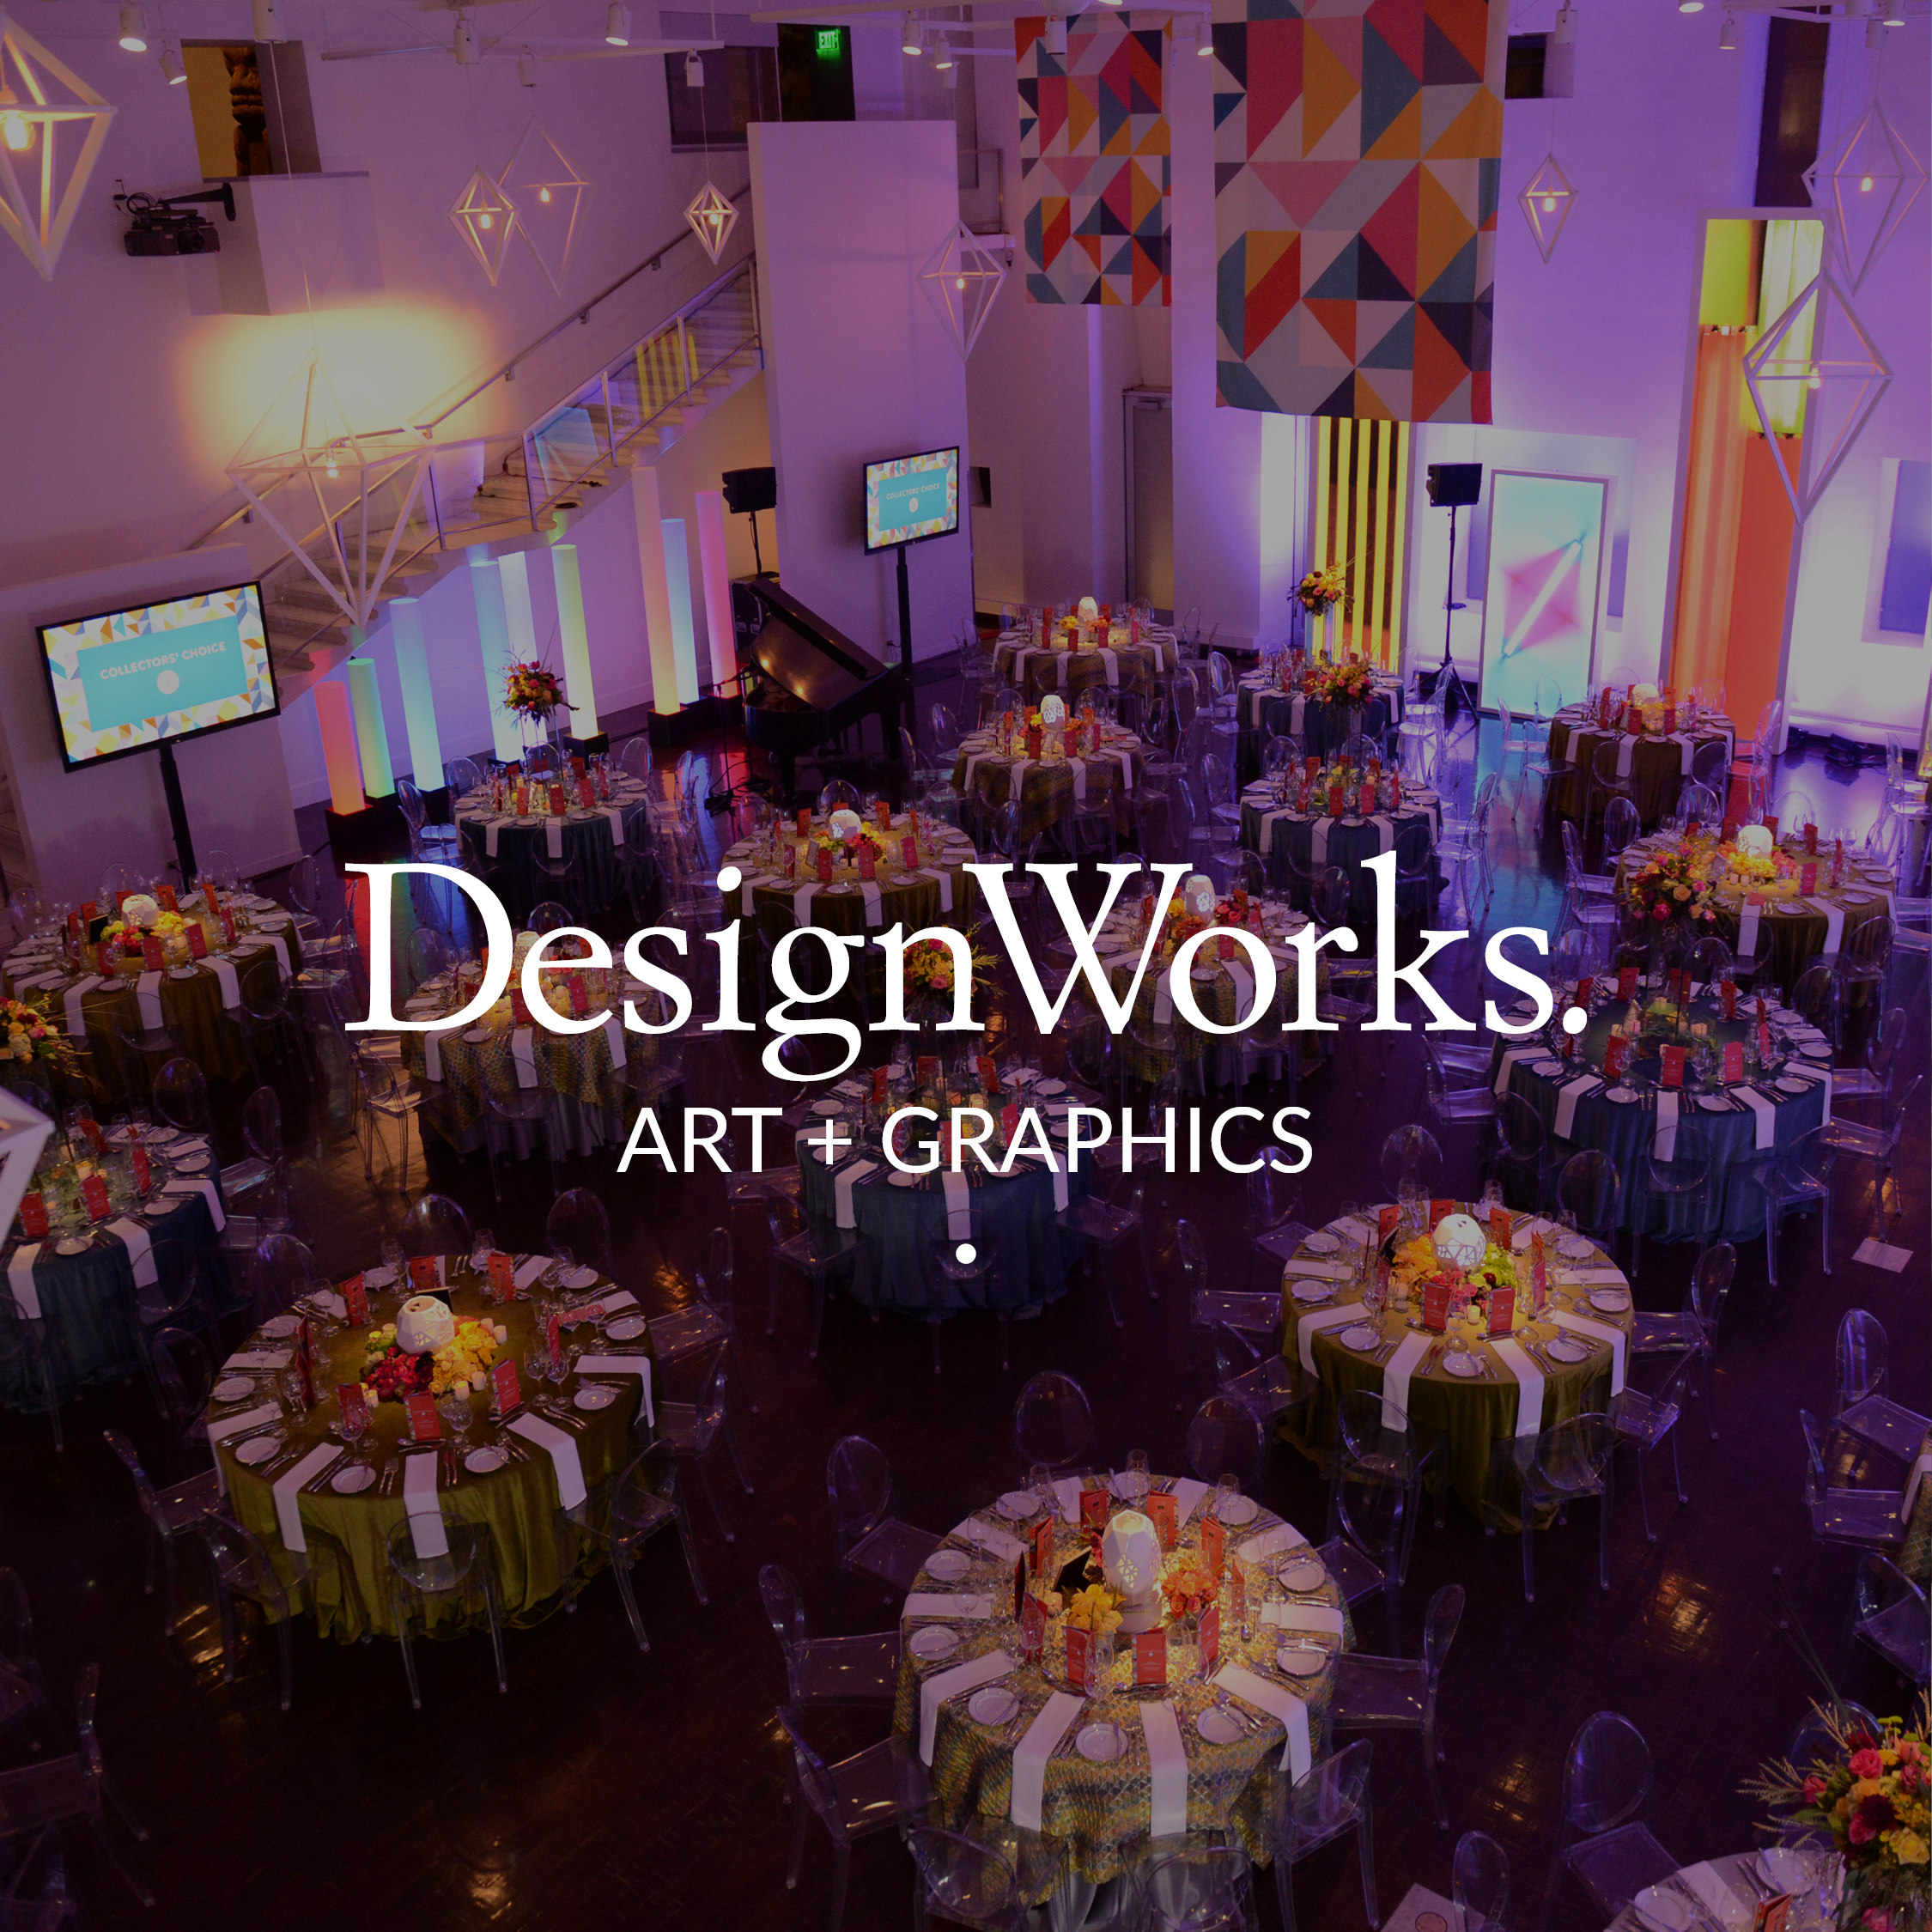 Design Works Service Art and Graphics Design